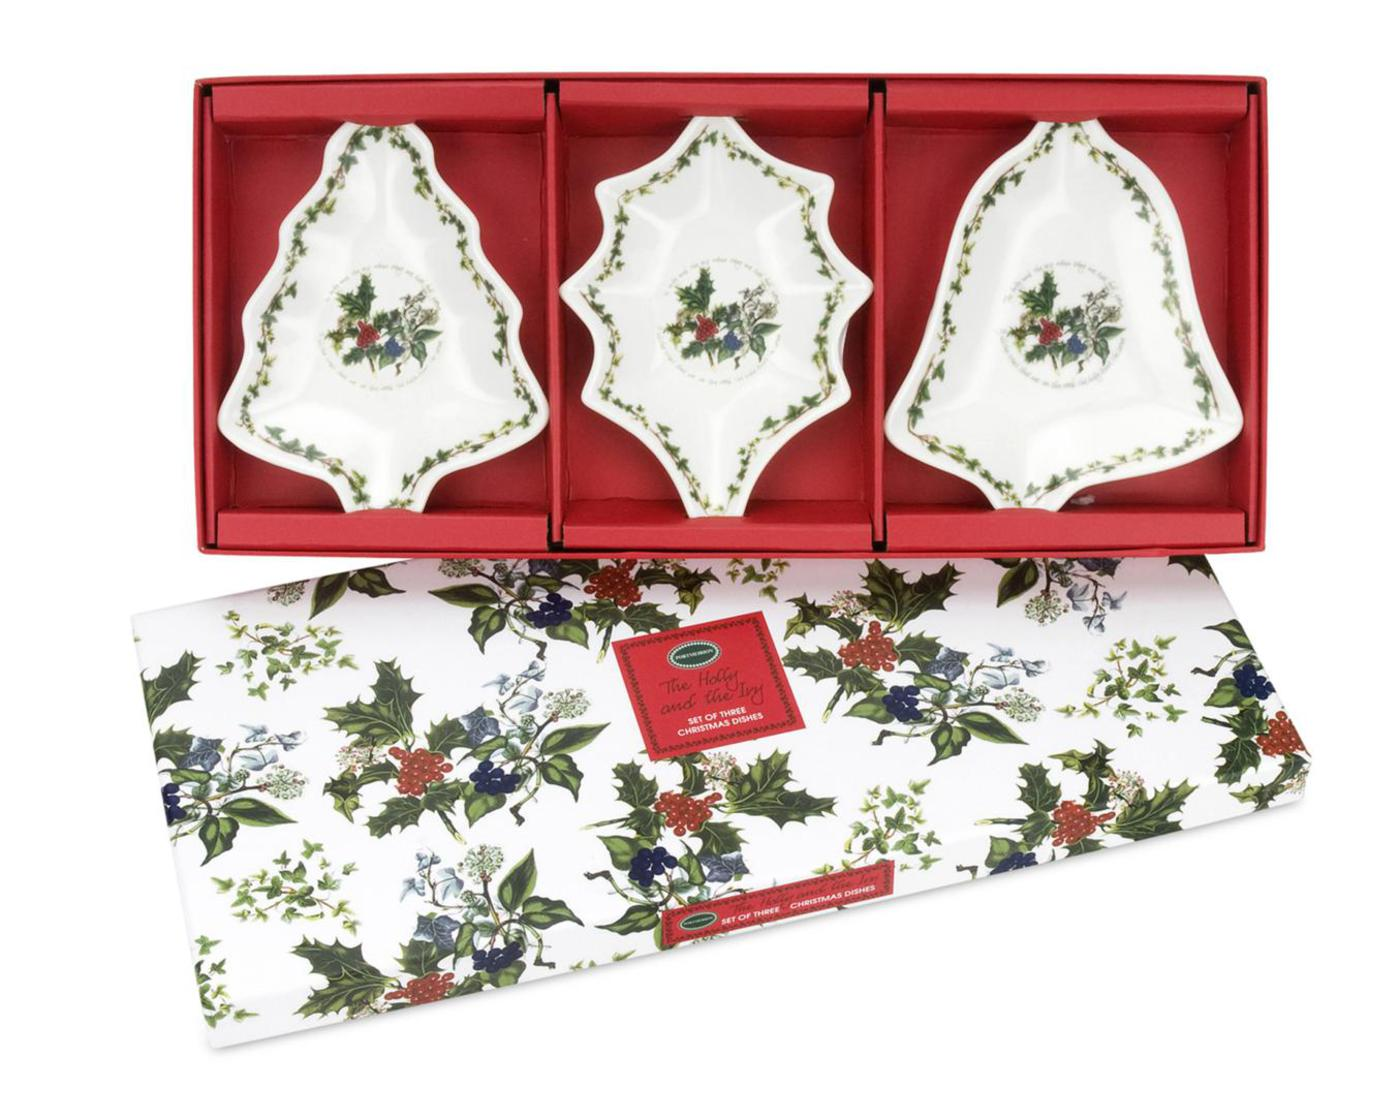 Portmeirion The Holly and The Ivy Christmas Dishes Set of 3 image number 0